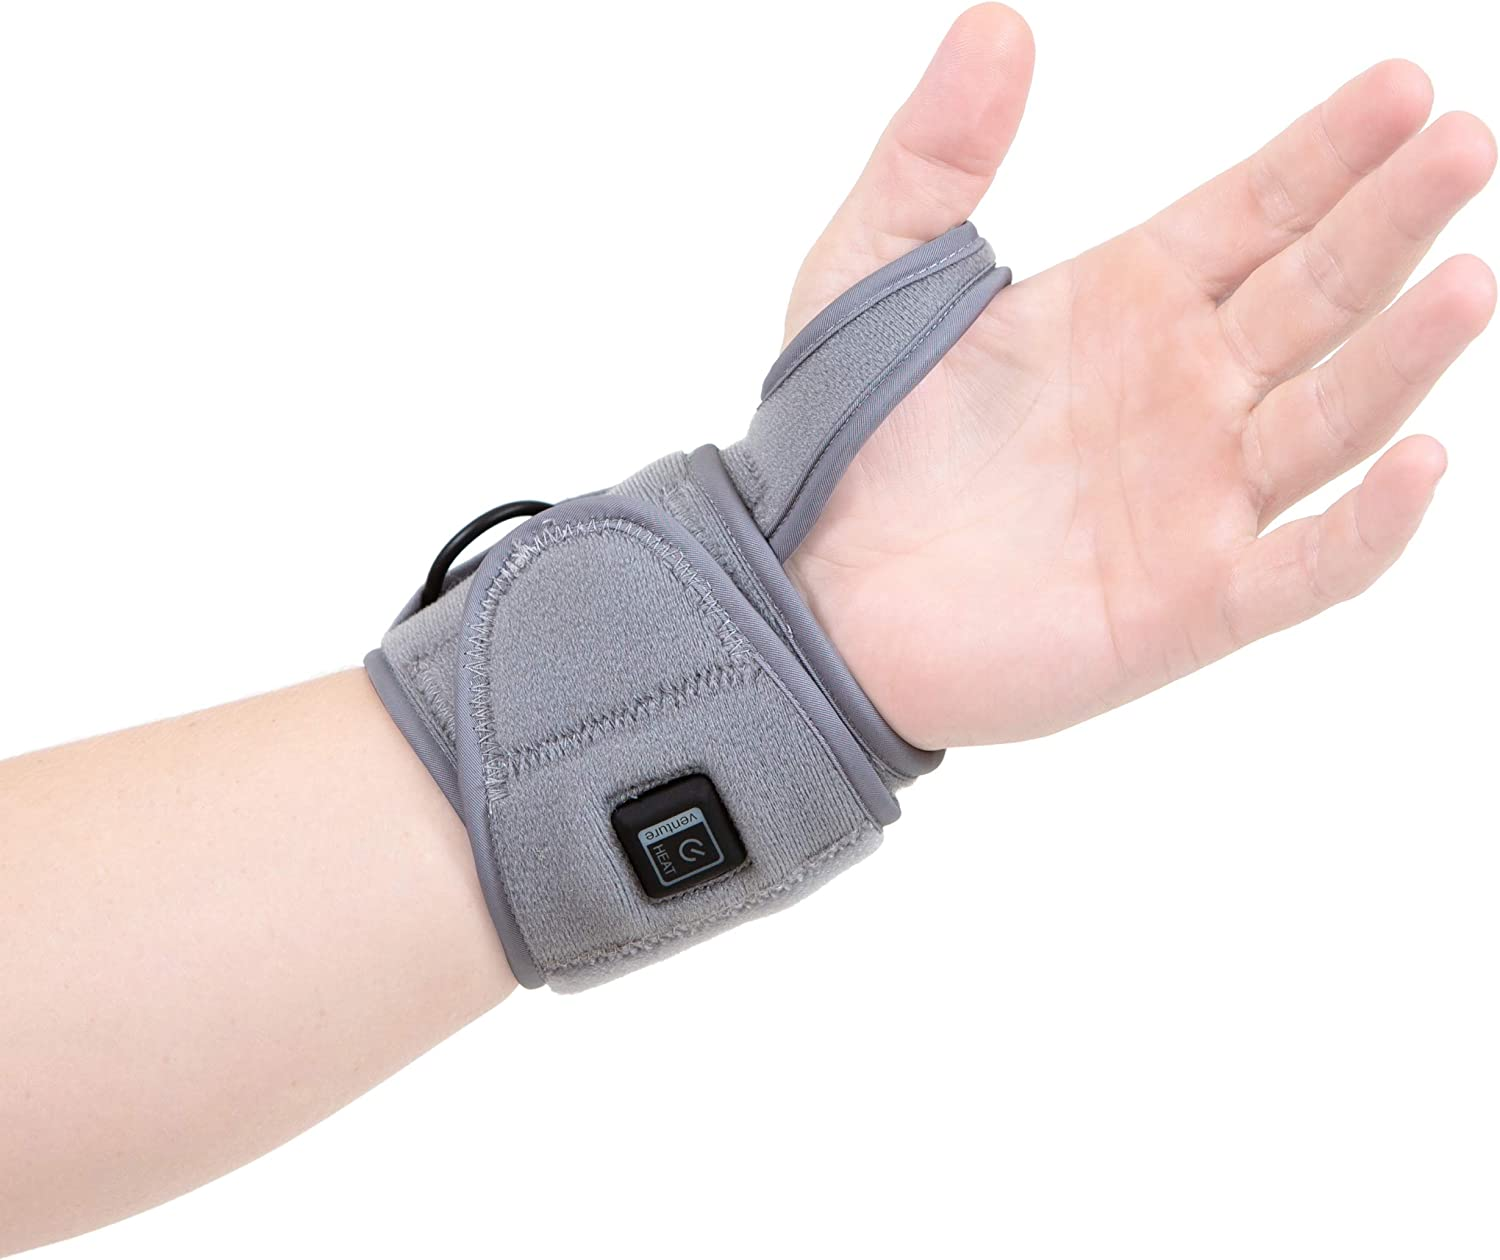 Venture Heat Infrared Wrist Heating Pad for Pain Relief Recovery Healing - Heated Wrap Brace for Sprains, Carpal Tunnel, Arthritis, Tendonitis